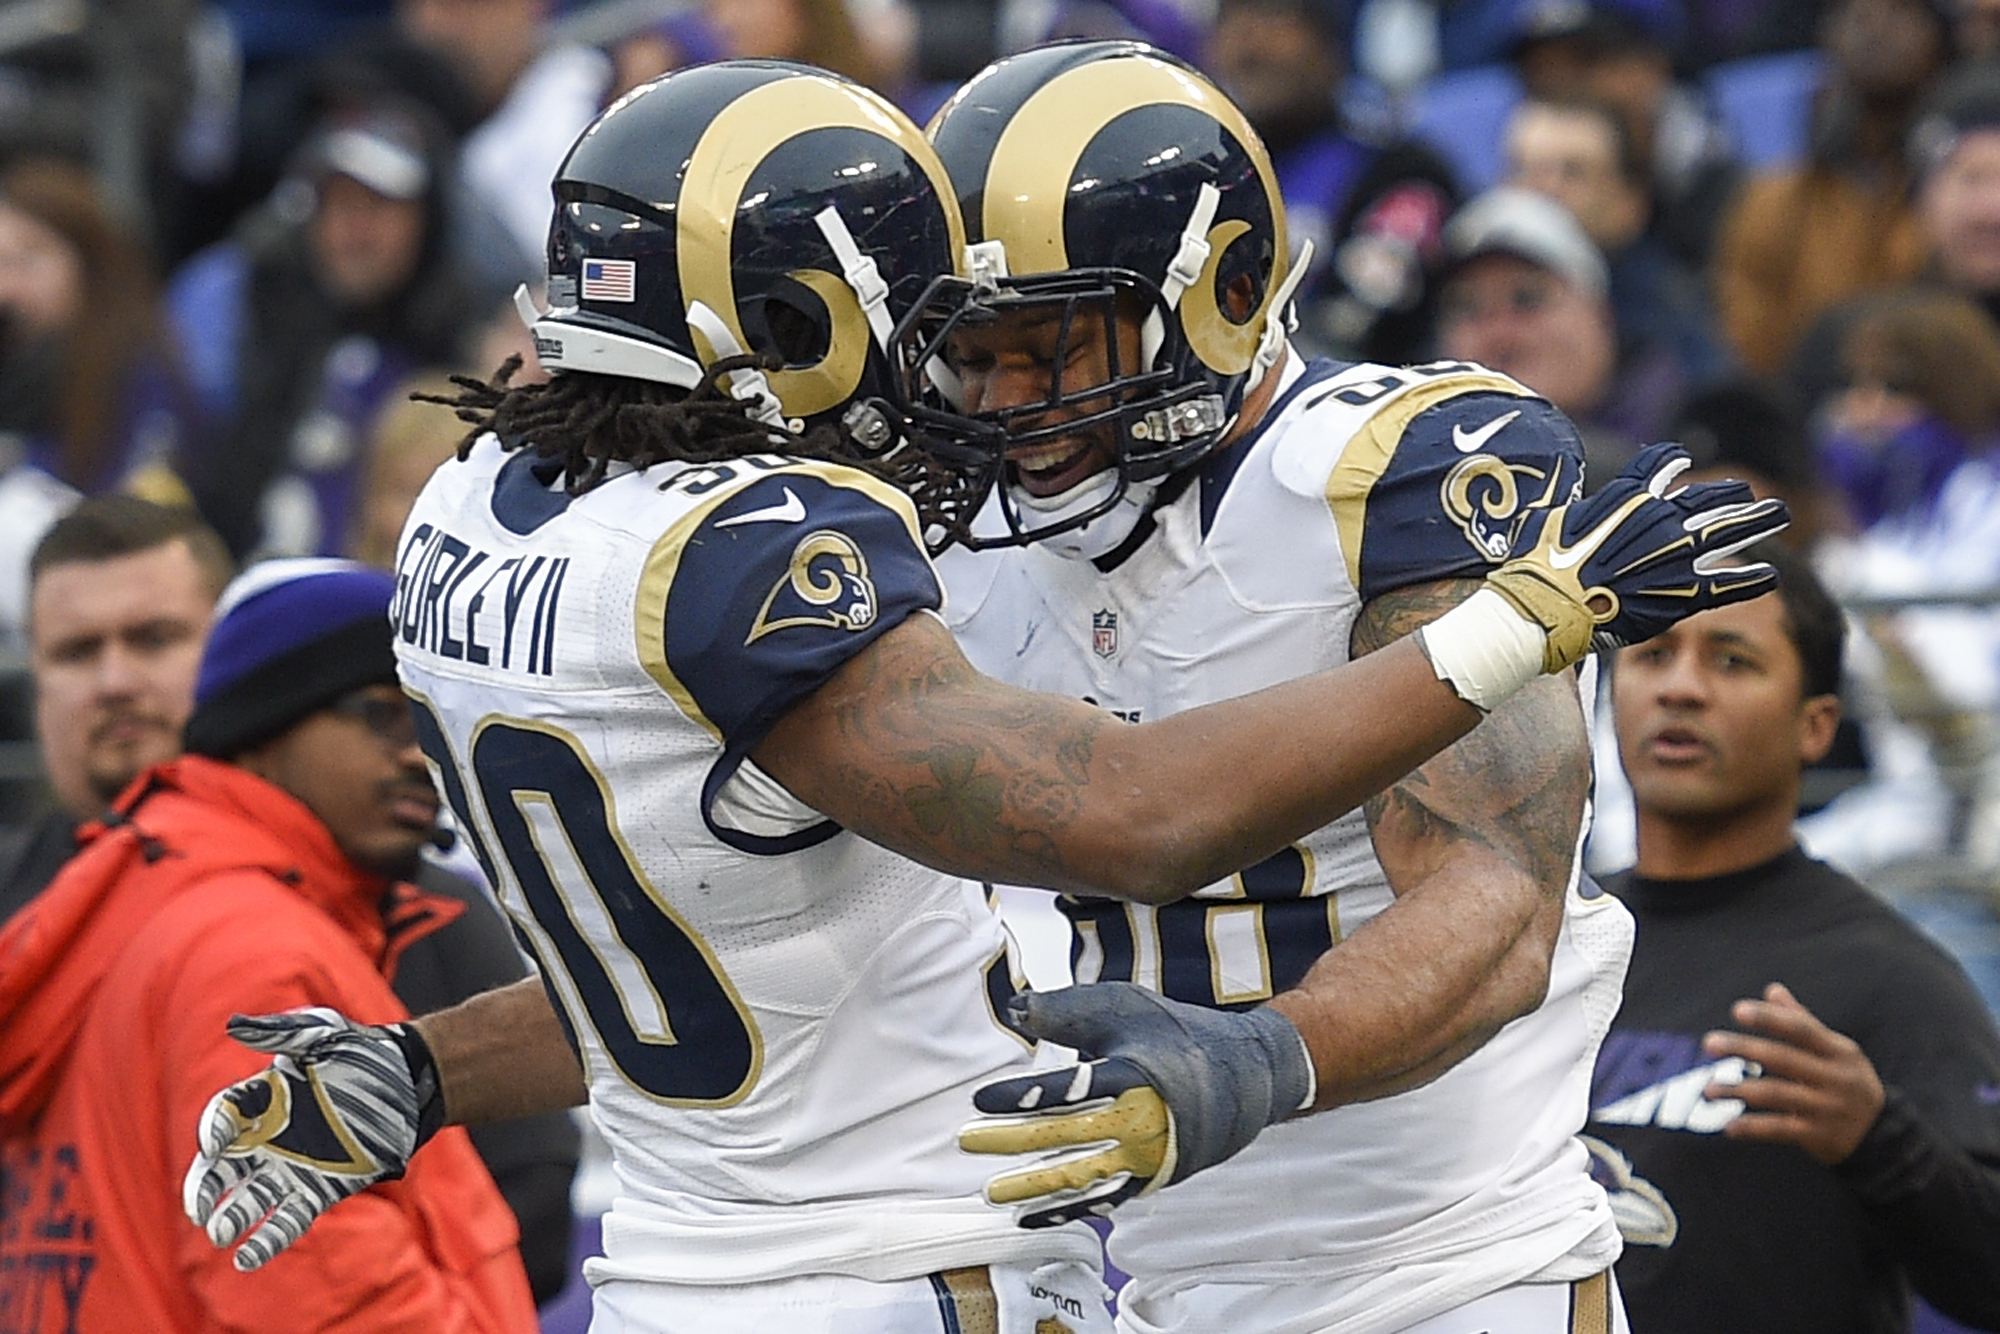 St. Louis Rams tight end Lance Kendricks (88) celebrates his touchdown with teammate running back Todd Gurley (30) during the second half of an NFL football game against the Baltimore Ravens in Baltimore, Sunday, Nov. 22, 2015. (AP Photo/Nick Wass)